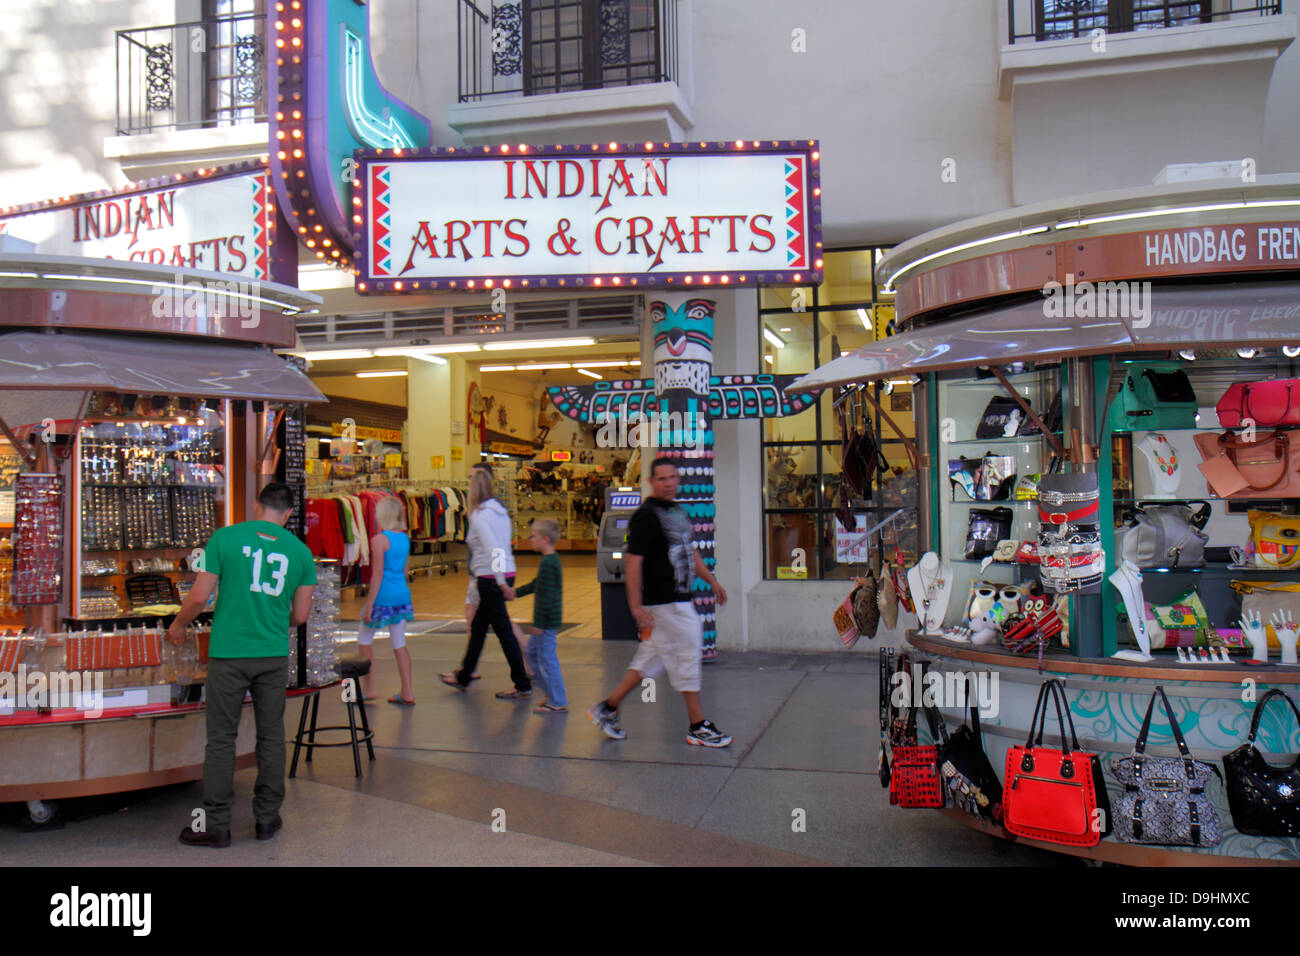 Fremont street experience pedestrian mall stock photos for Arts and crafts las vegas